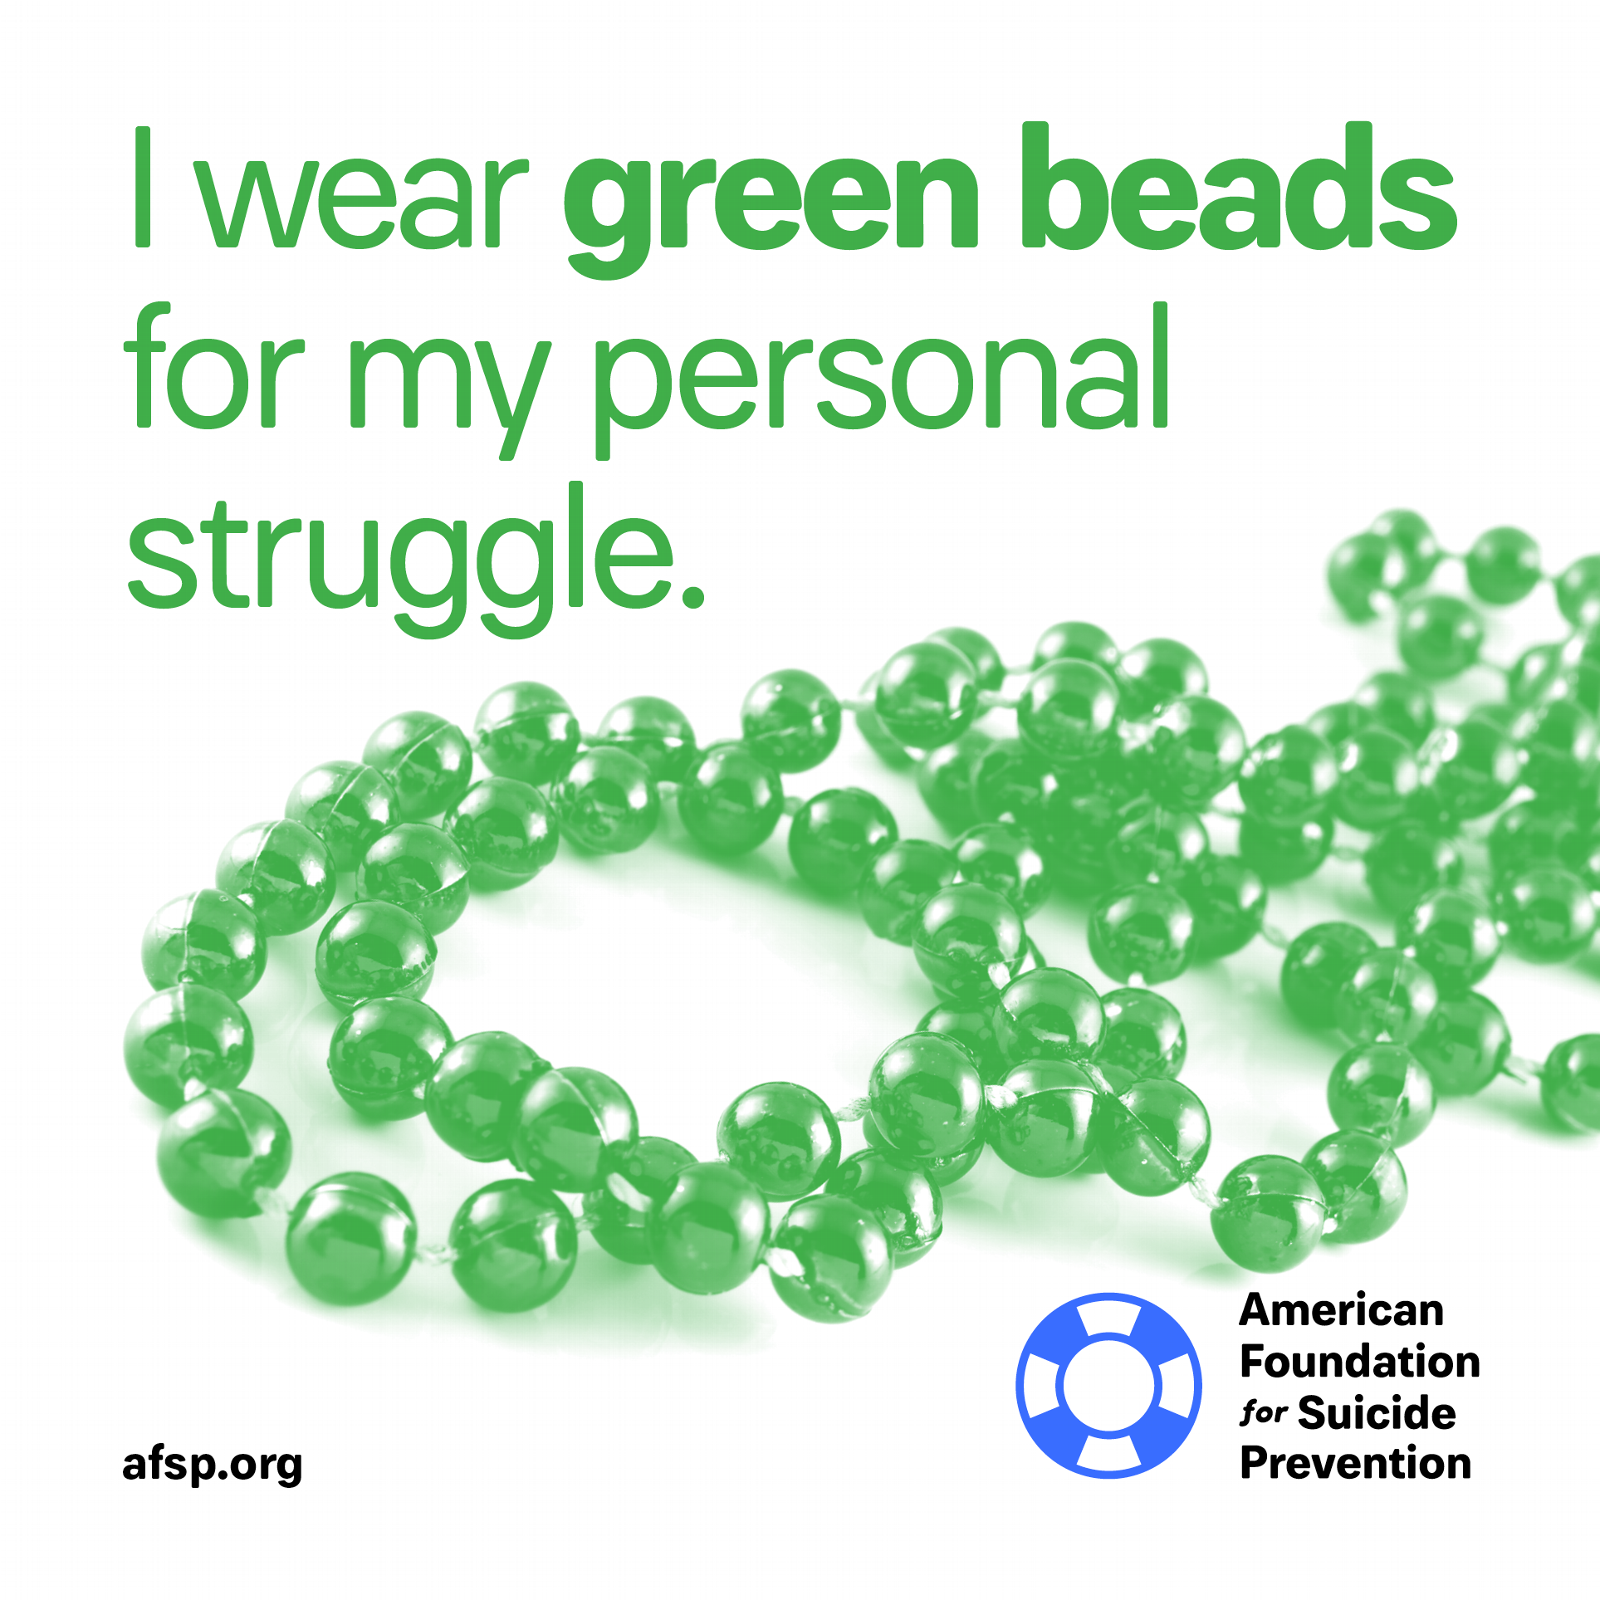 Green beads for my personal struggle